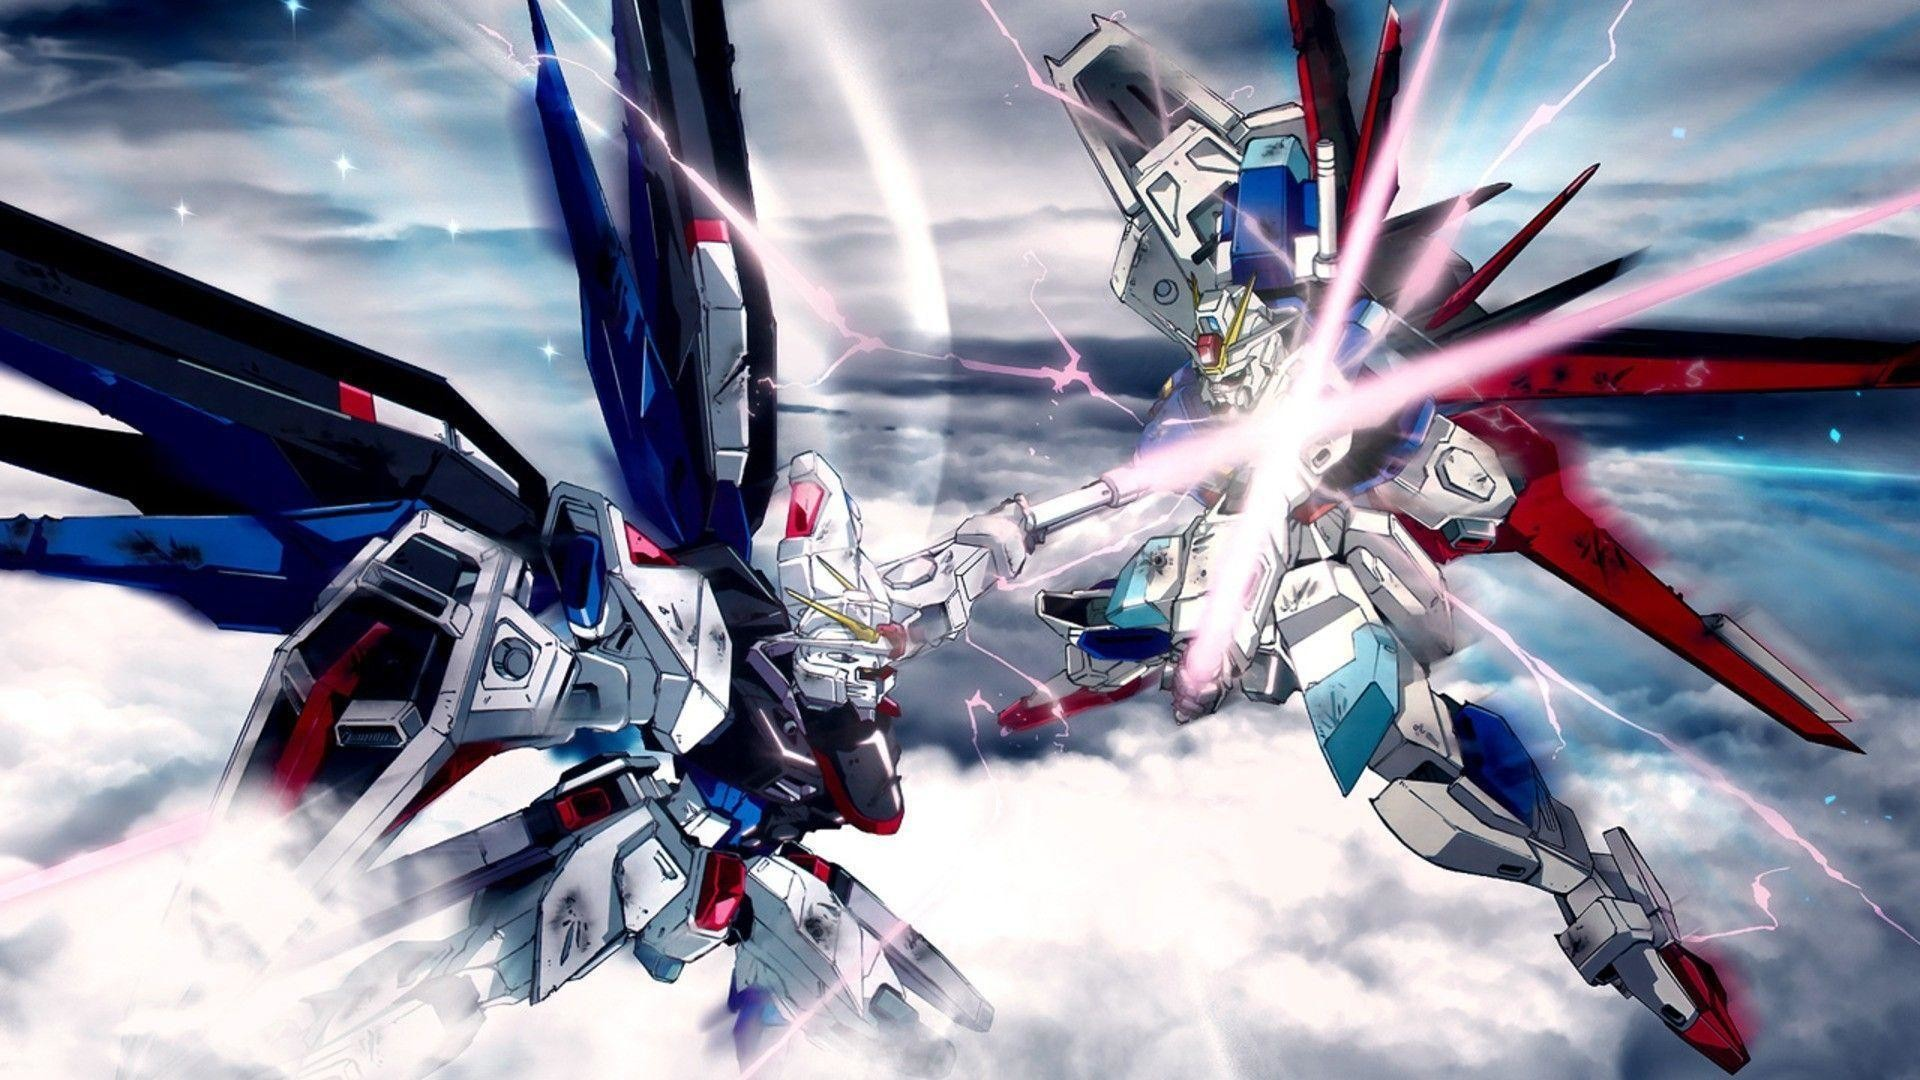 1920x1080 Download Mobile Suit Gundam Seed Destiny Wallpaper  .